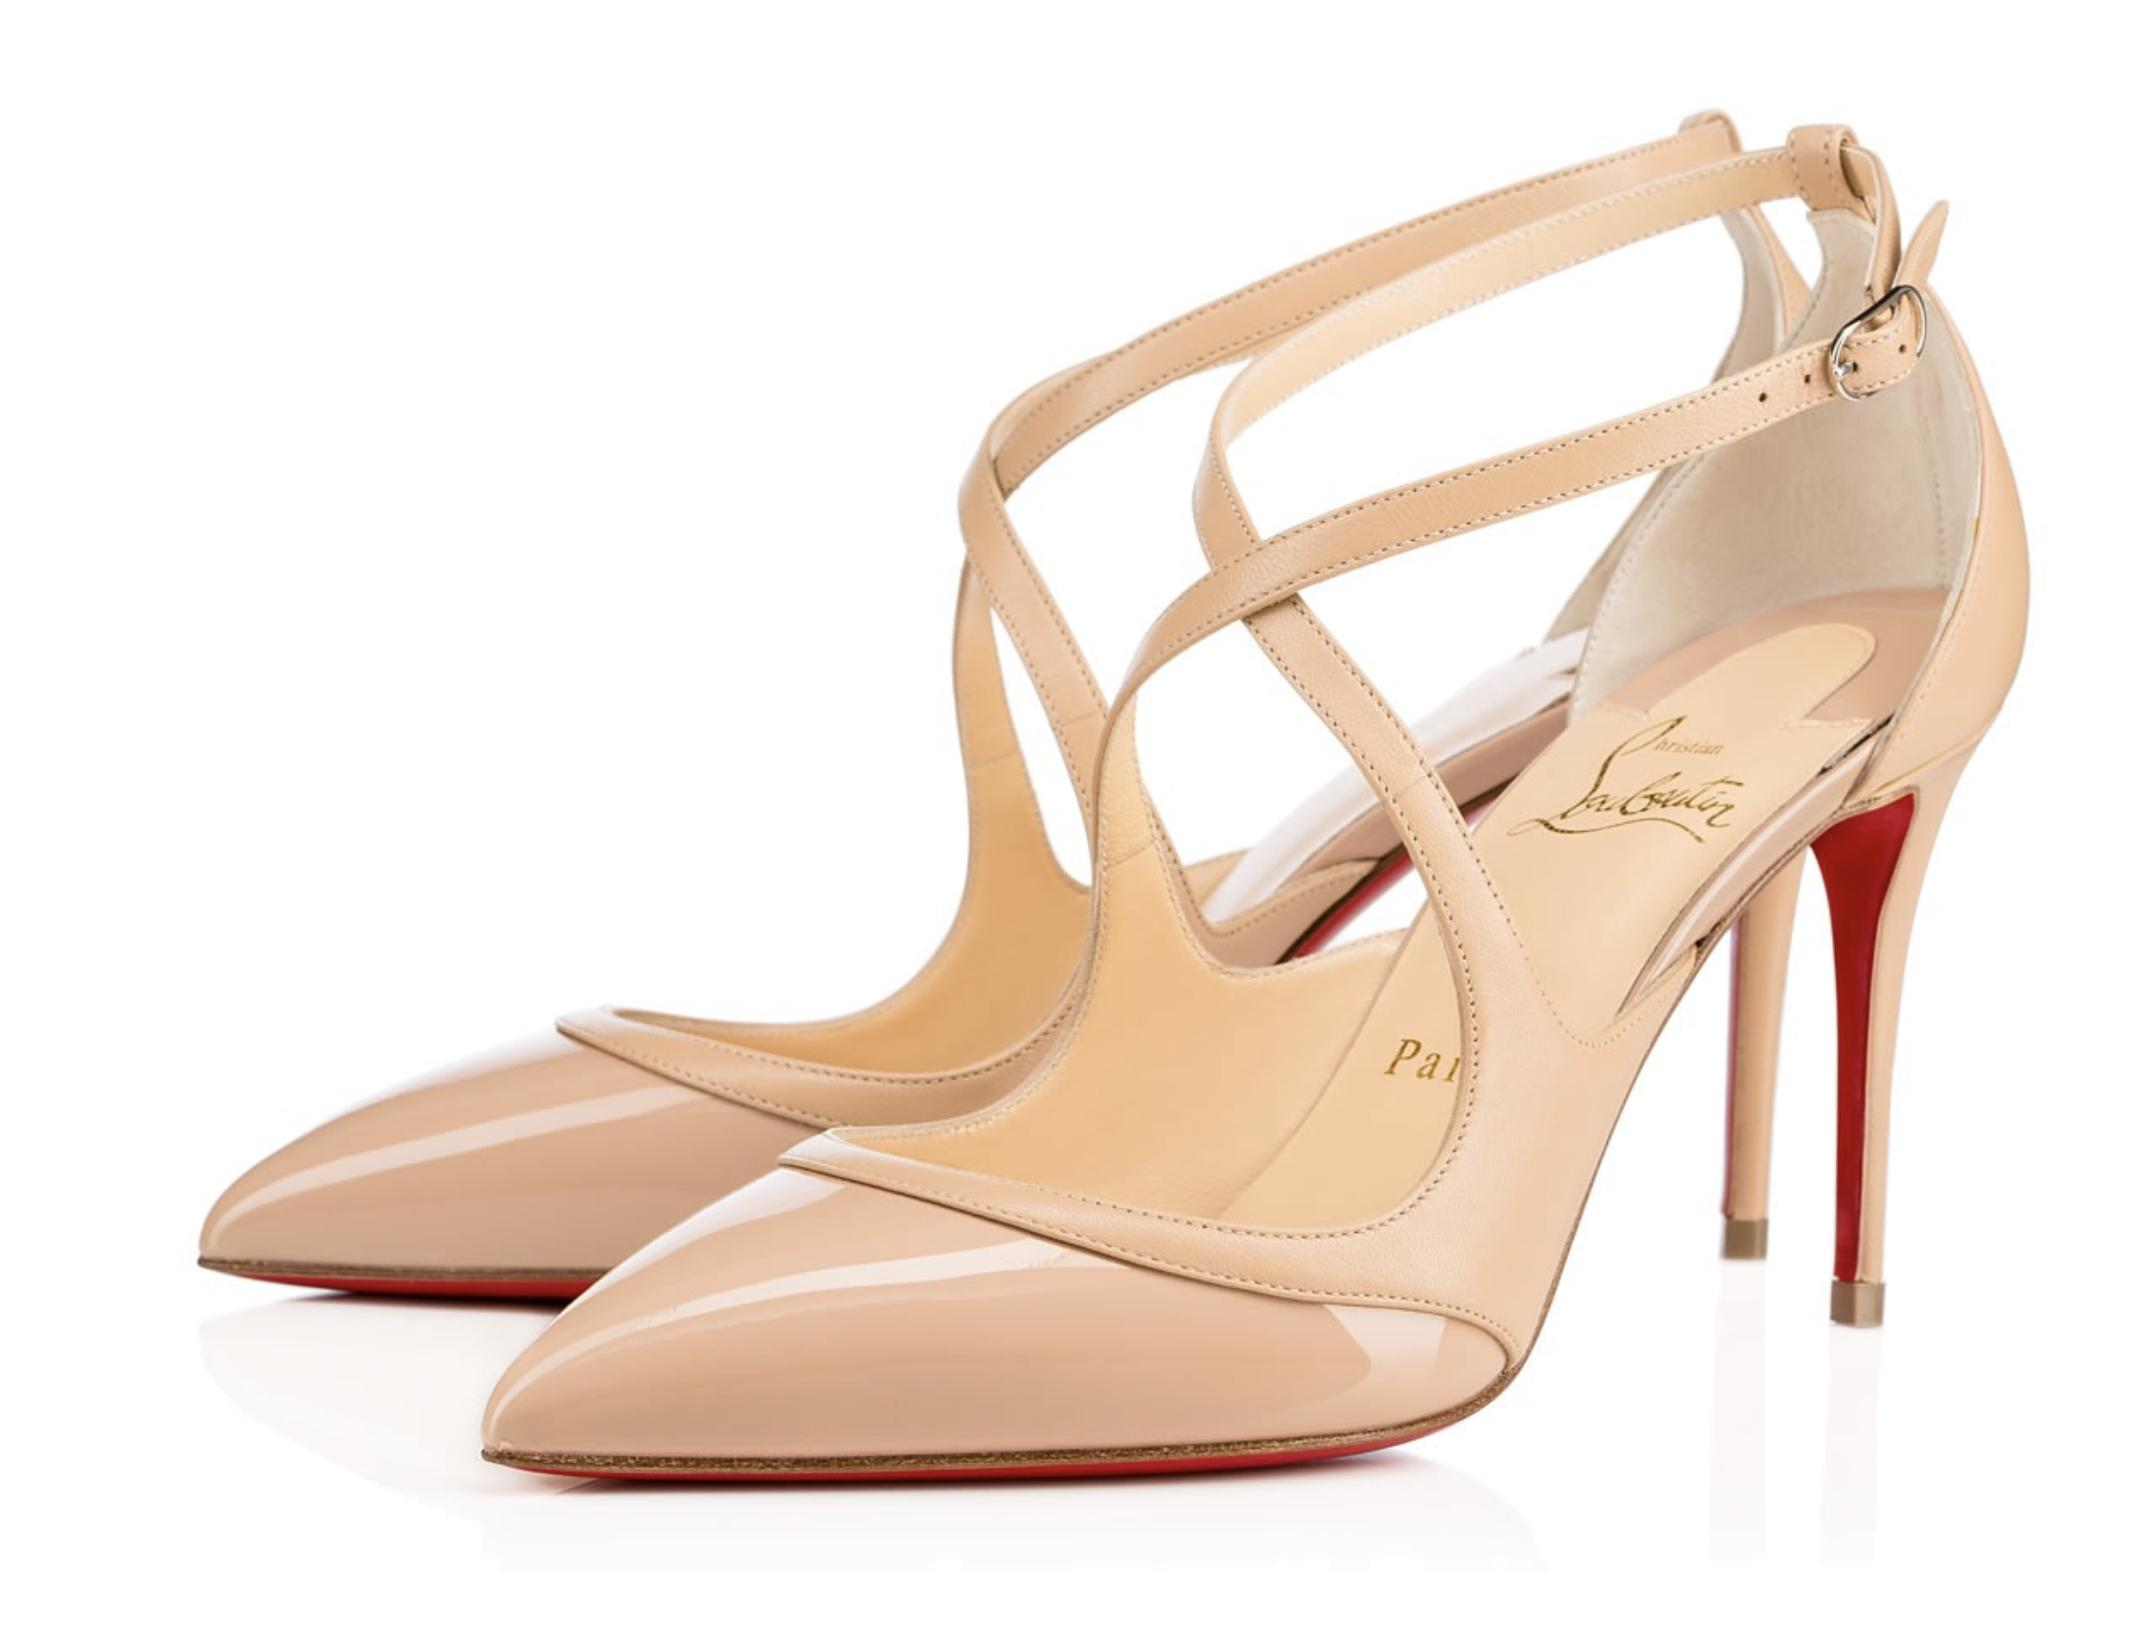 Christian Louboutin Nude Crissos 85mm Criss Cross #a508 Pumps Size EU 39.5 (Approx. US 9.5) Regular (M, B)